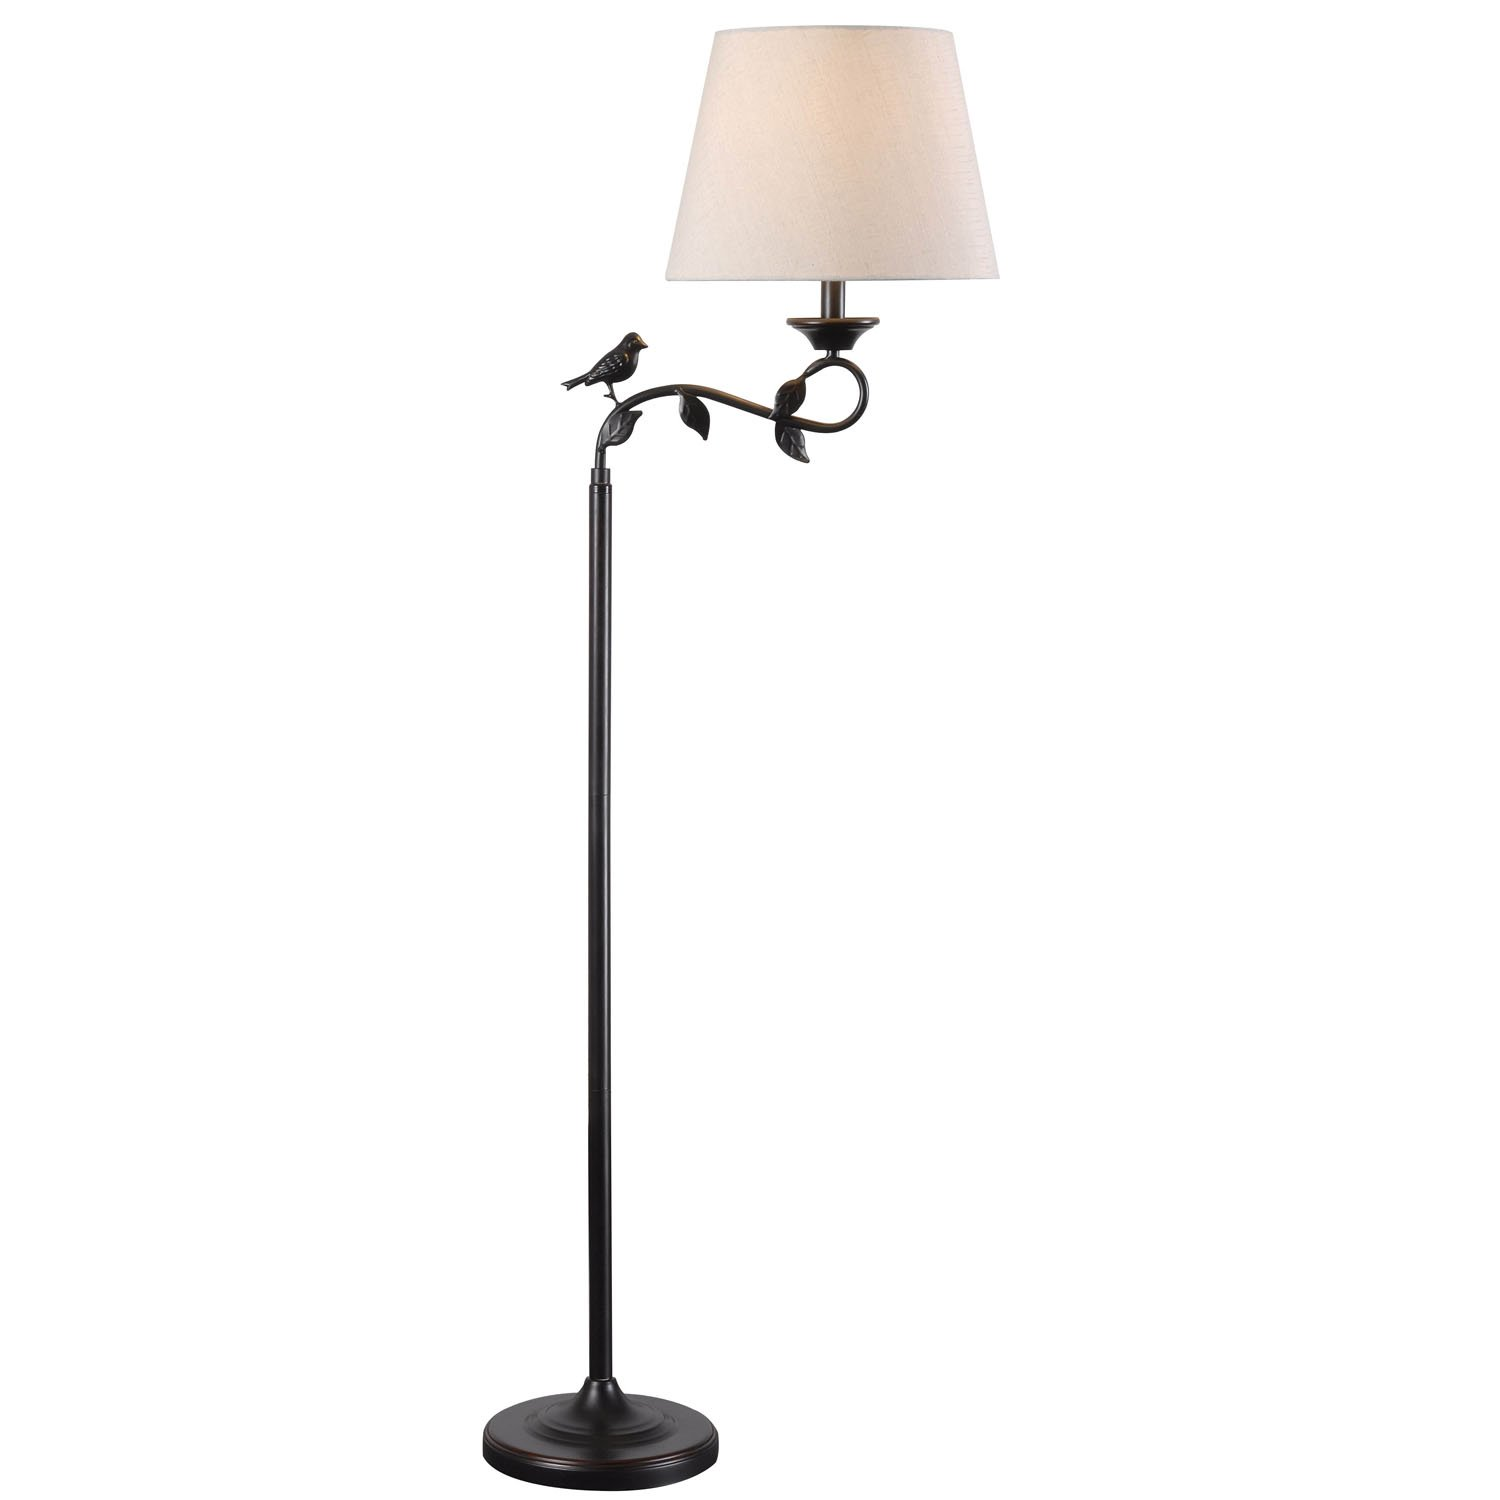 Kenroy home 32613orb birdsong swing arm floor lamp 1012 x 60 x kenroy home 32613orb birdsong swing arm floor lamp 1012 x 60 x 21 oil rubbed bronze finish with gold highlights amazon mozeypictures Image collections